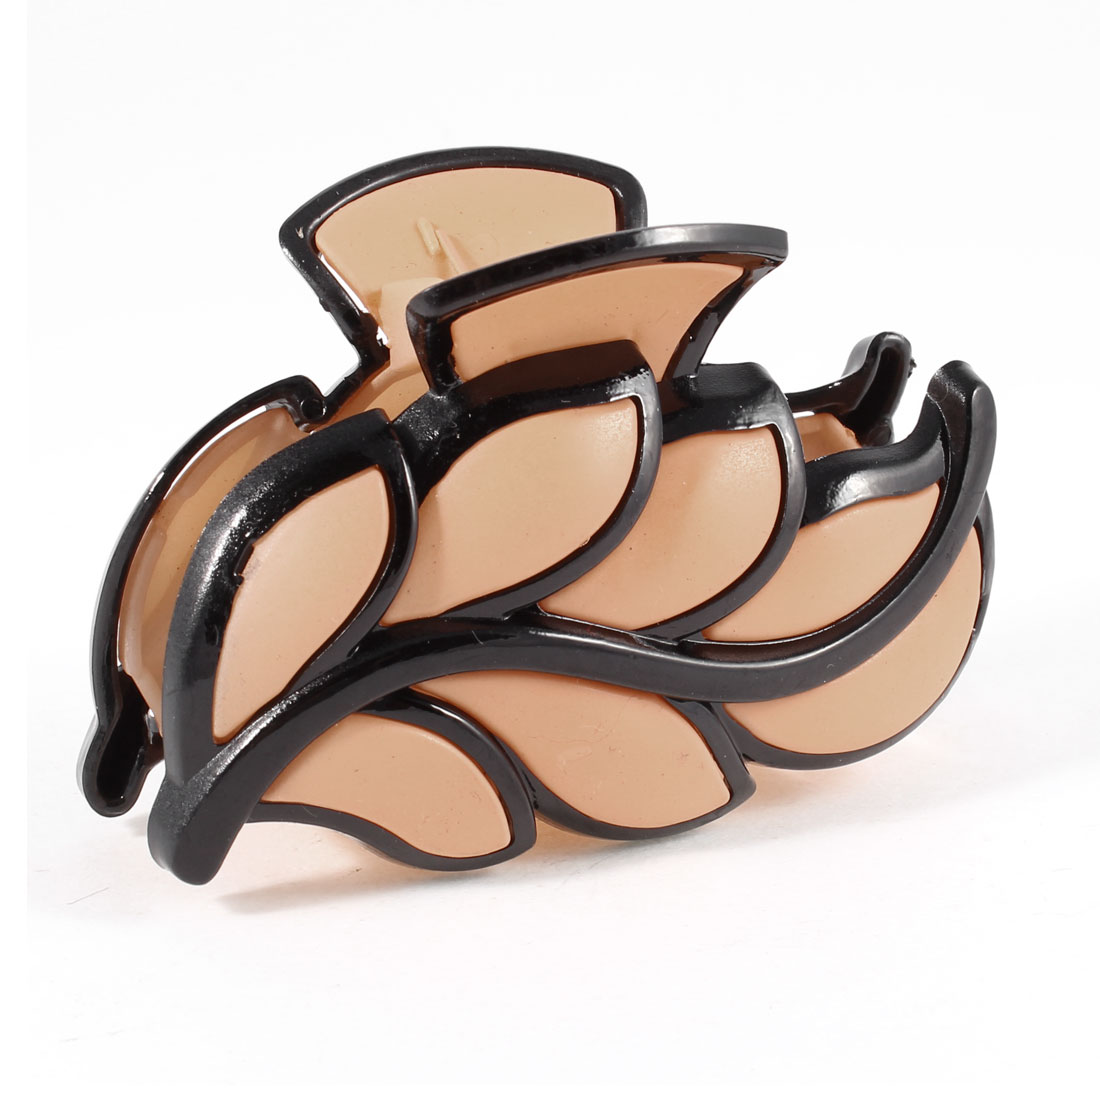 Apricot Color Black Leaves Shaped Plastic Barrette Hair Clip Clamp